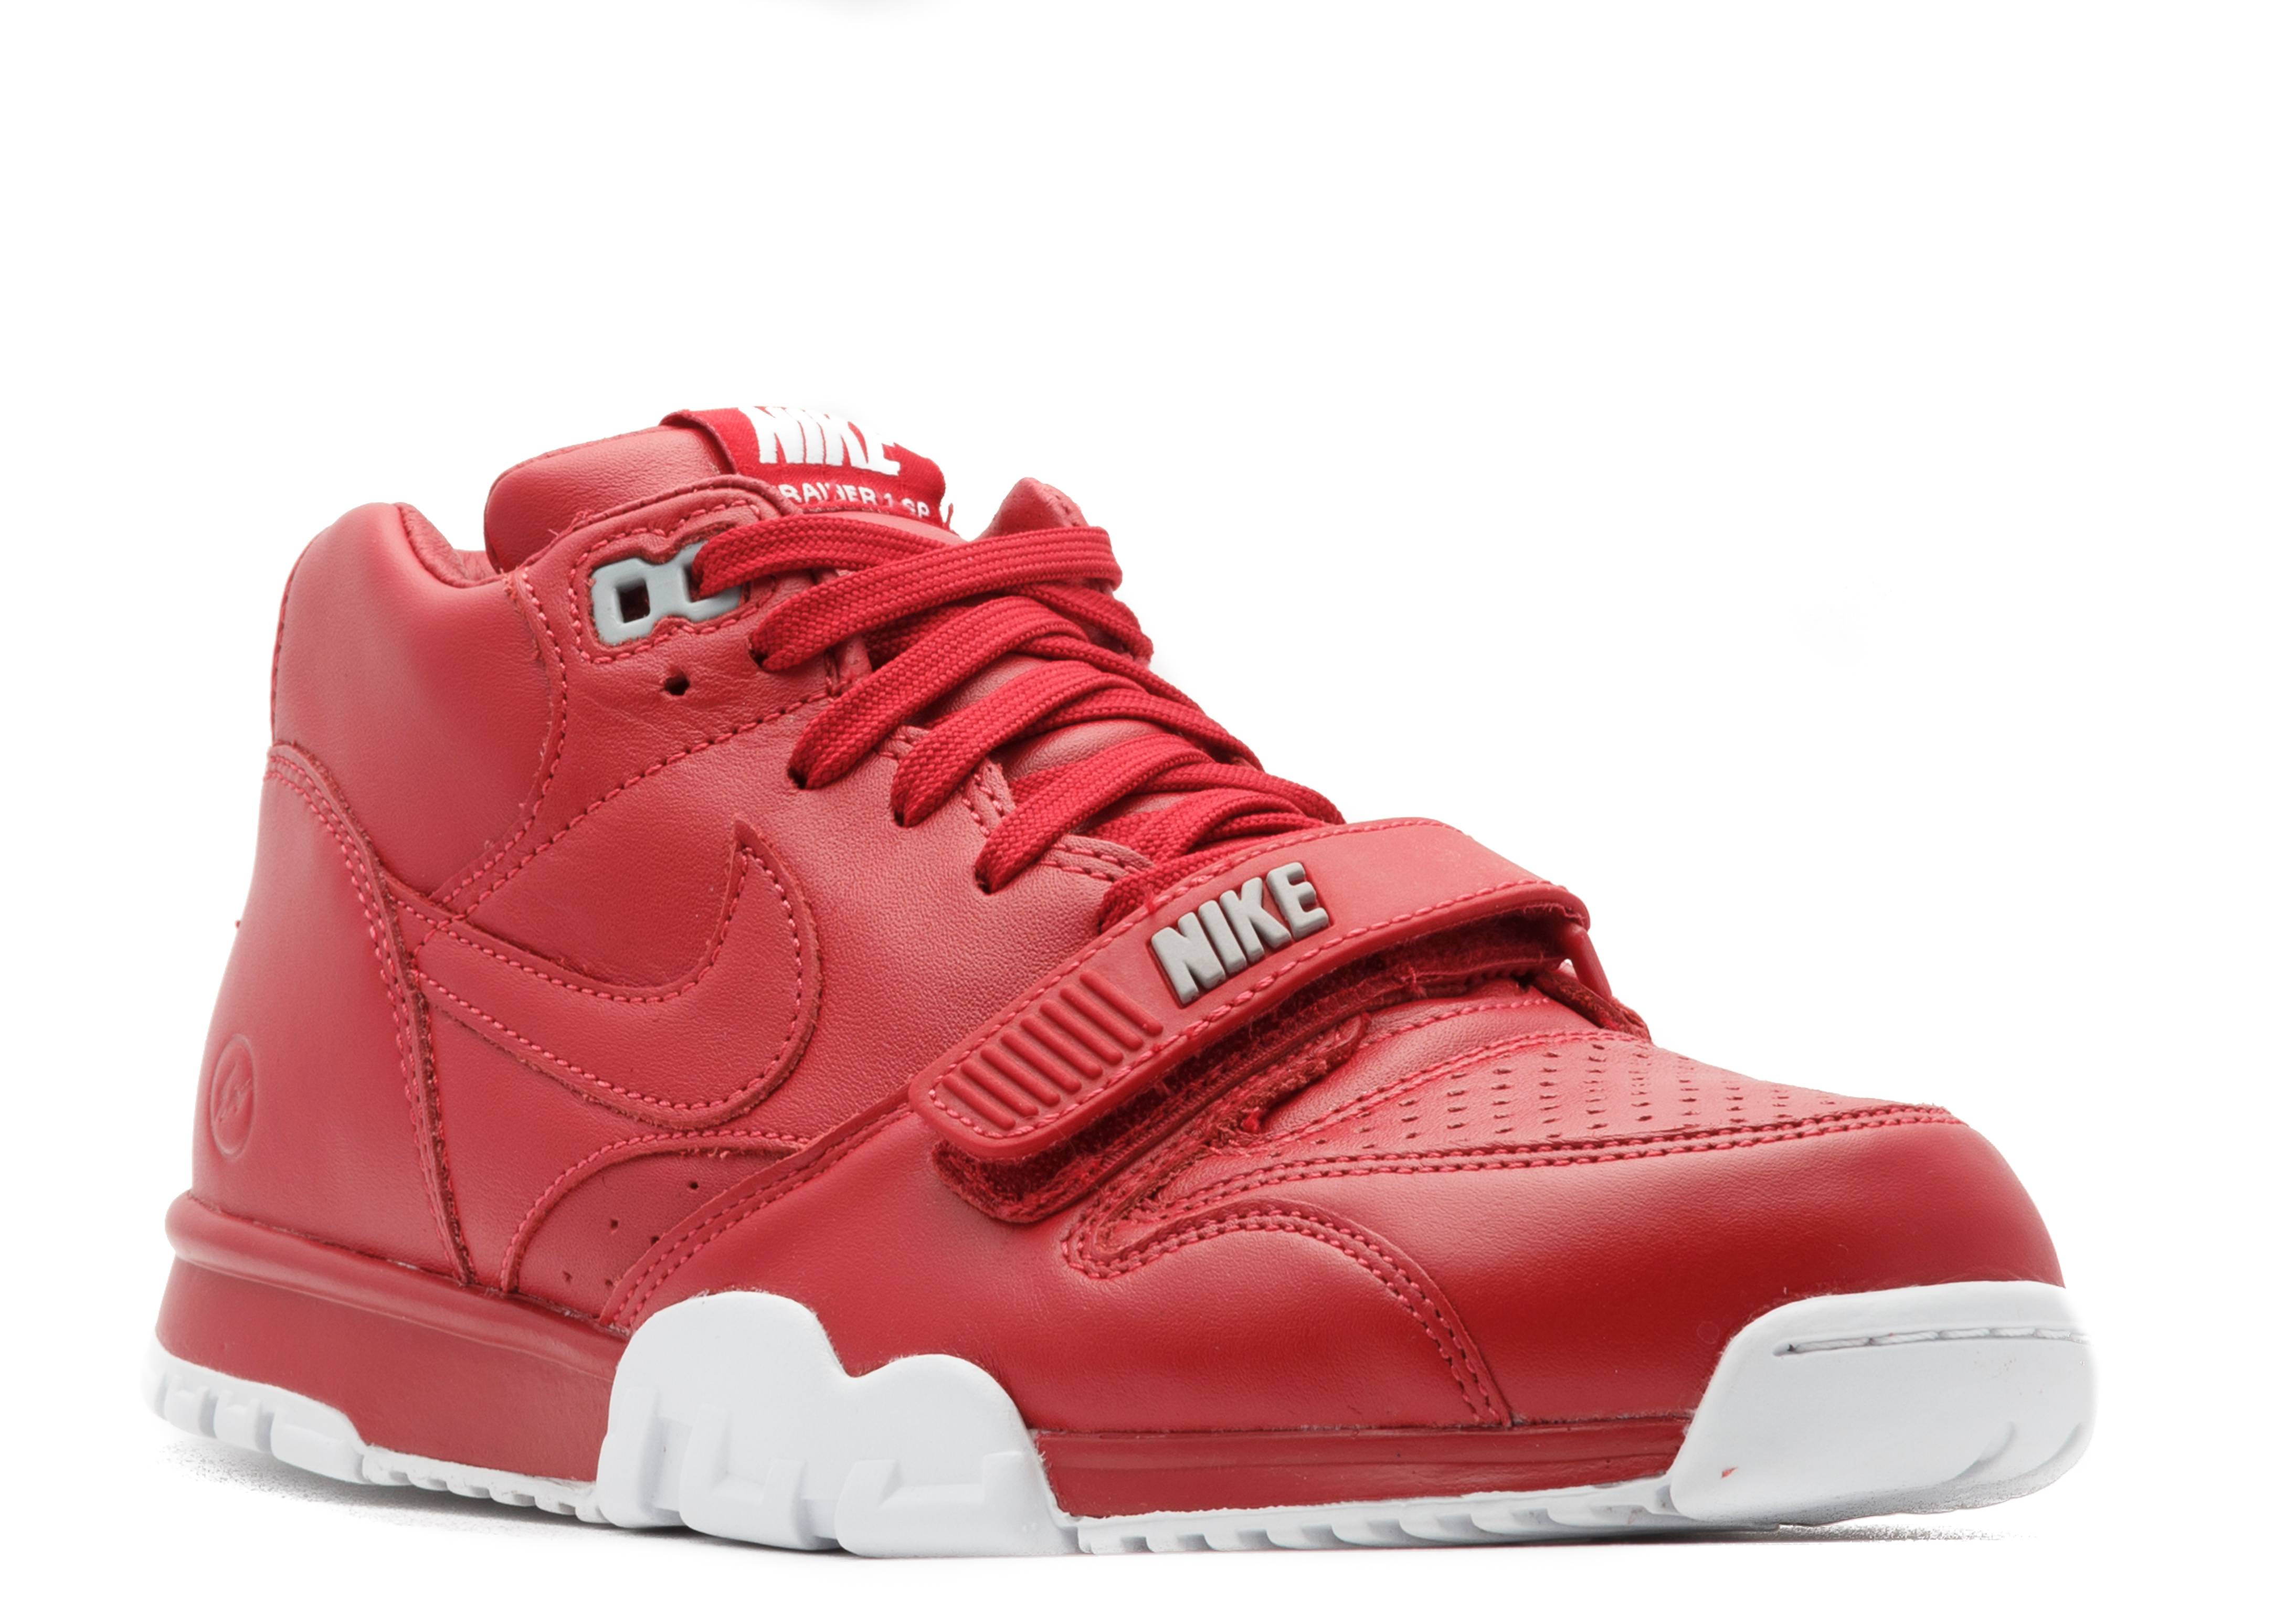 air trainer 1 mid sp/fragment - gym red/gym red-white - Nike | Flight Club